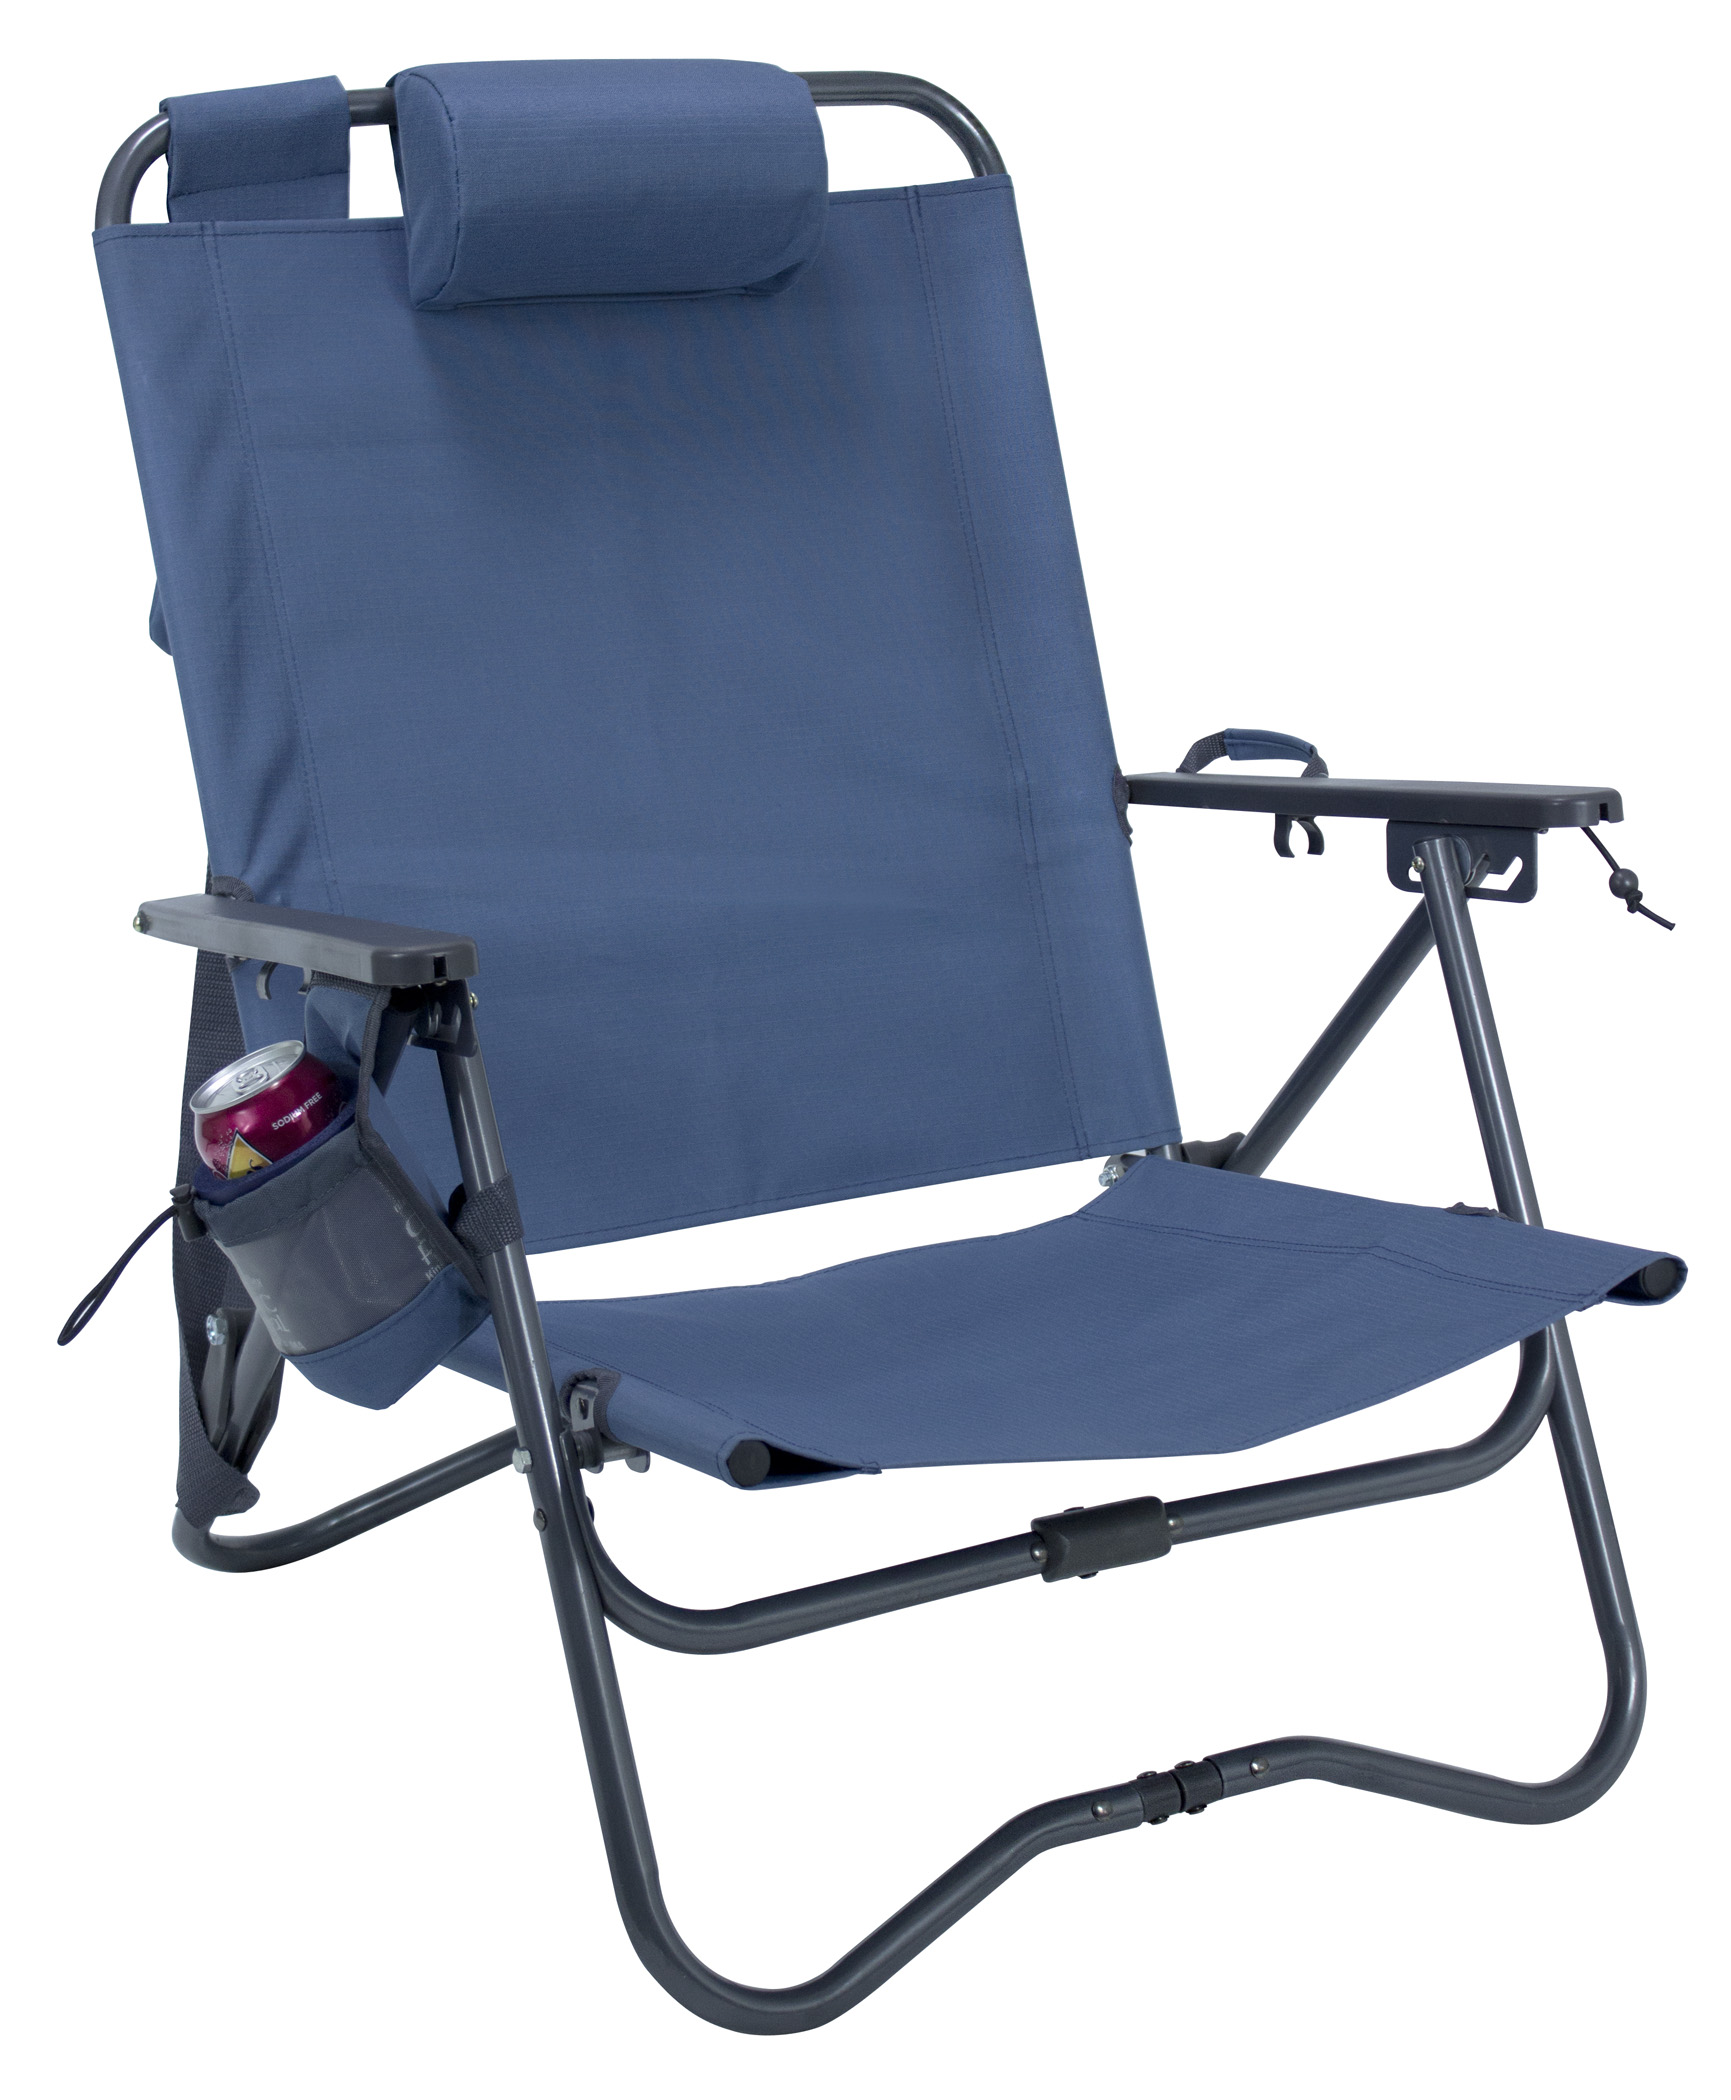 CLEARANCE: Bi-Fold Camp Chair by GCI Outdoor